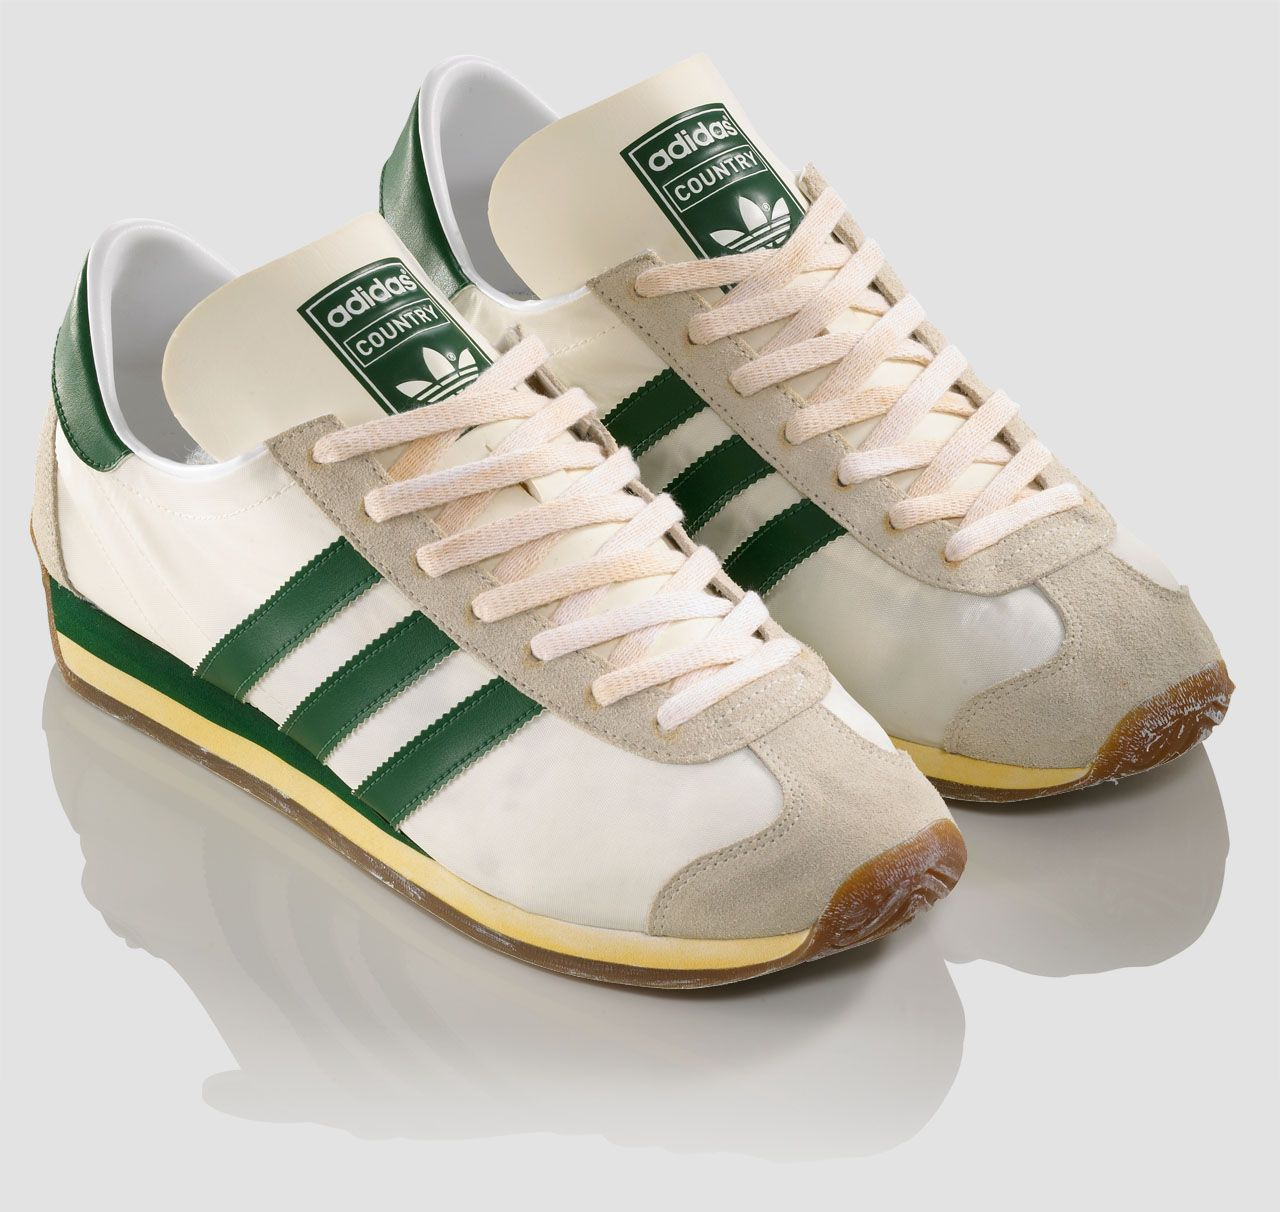 adidas country   Adidas country, Best shoes for men, Adidas sneakers